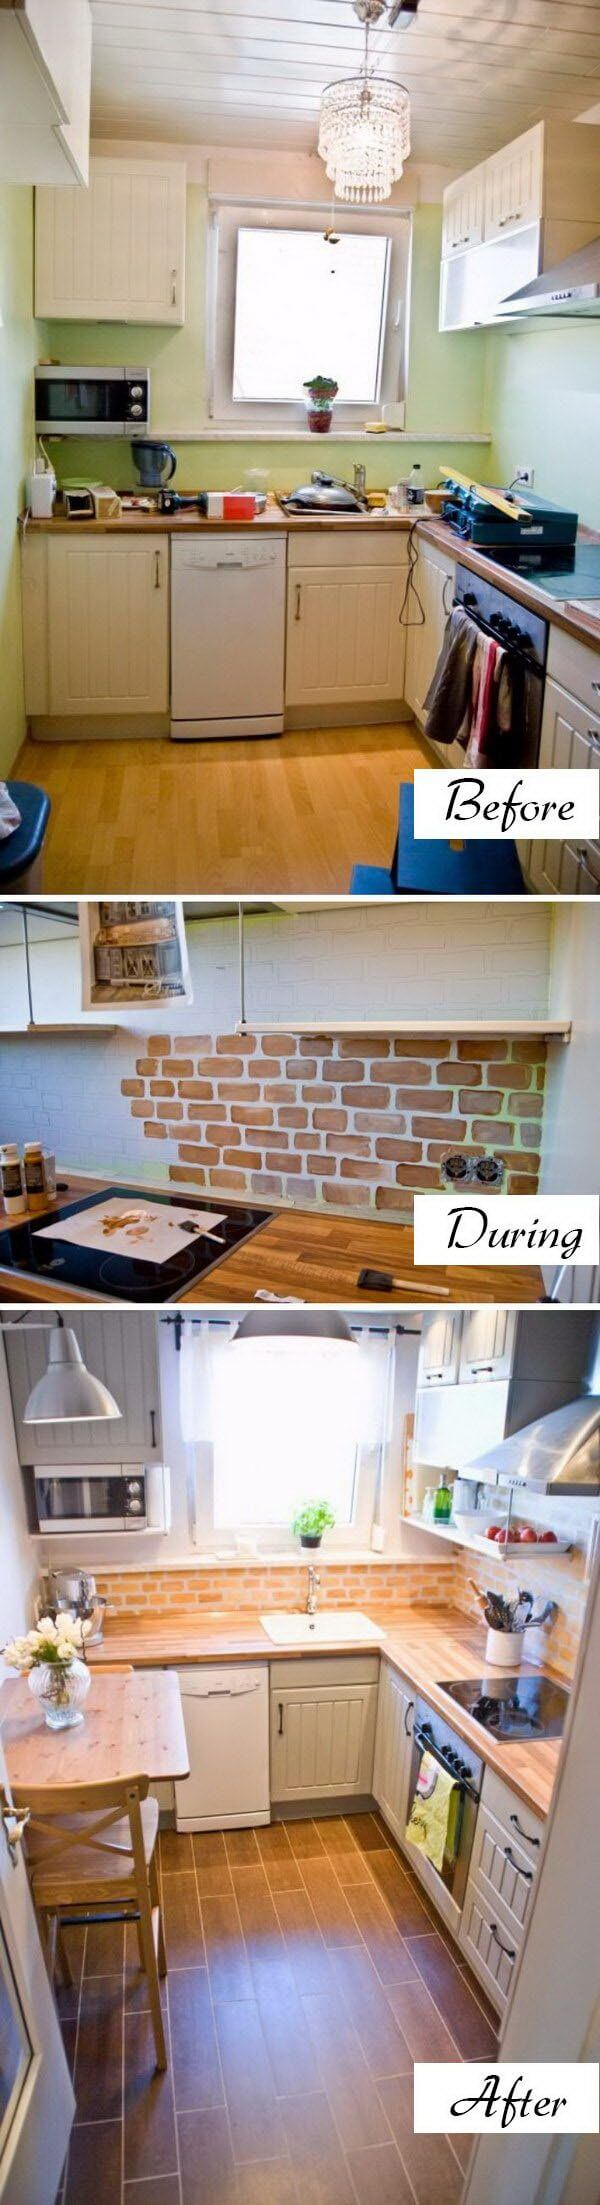 A Unique Brick Backsplash and Breakfast Nook